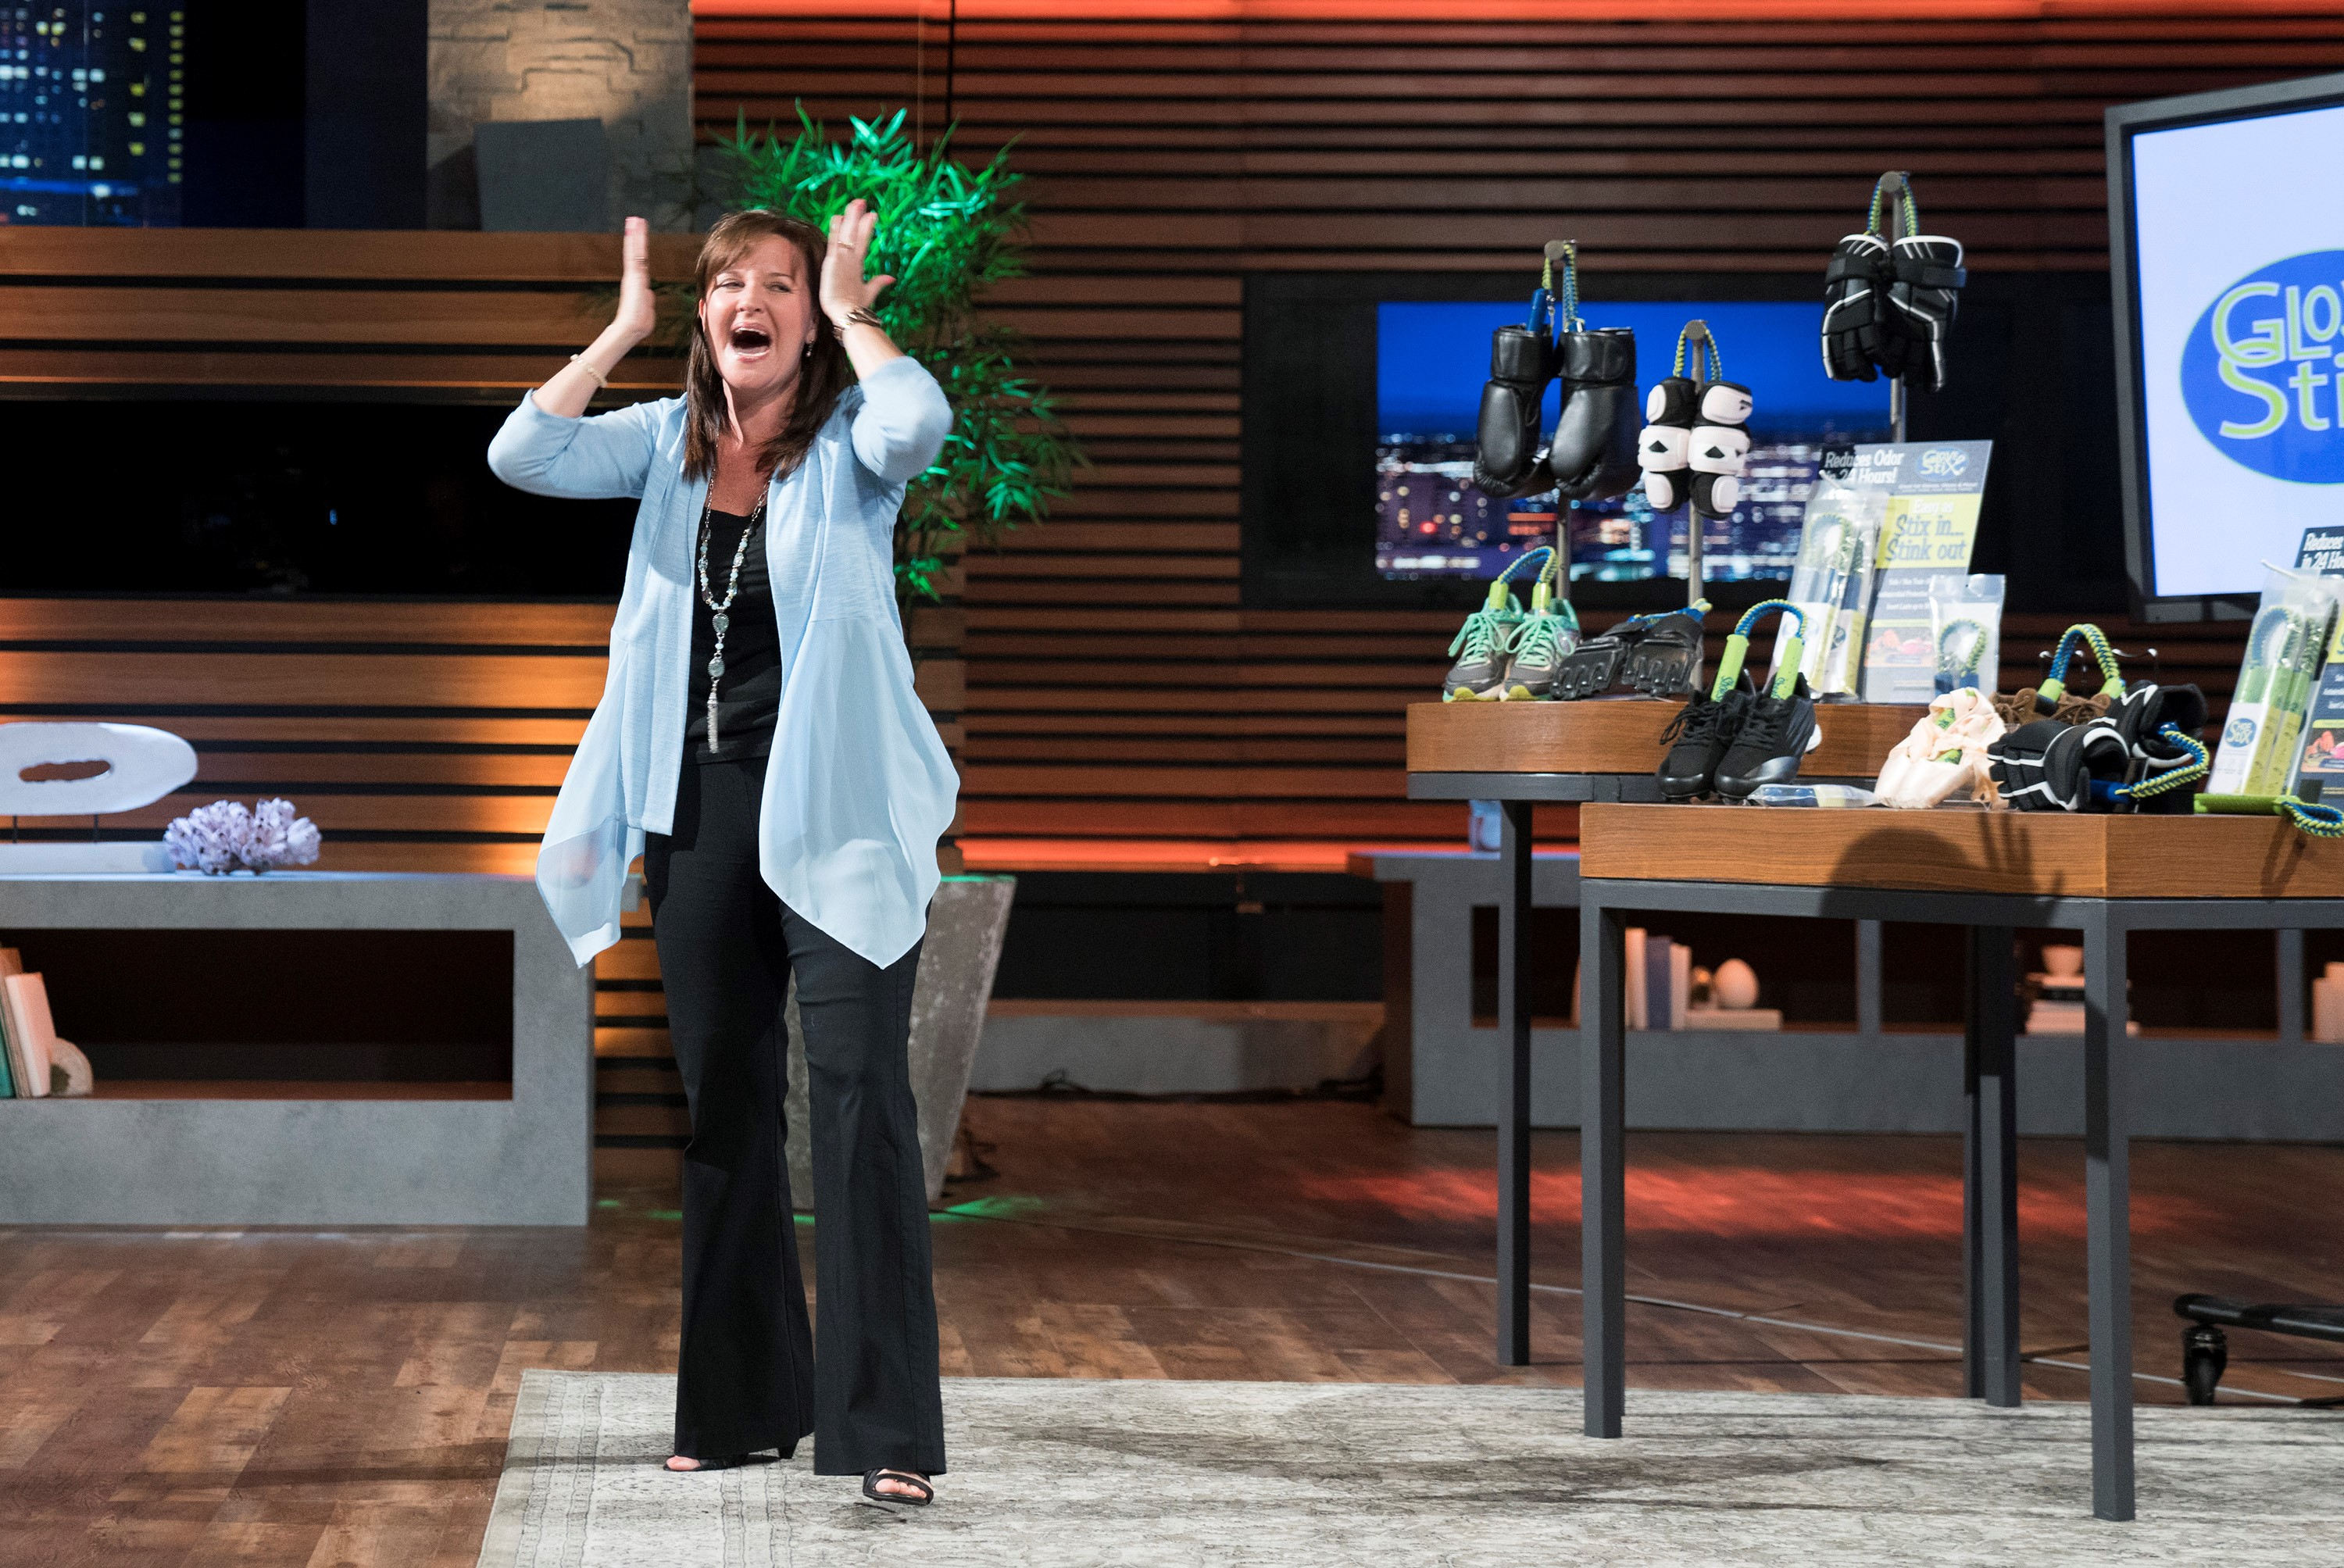 Despite friends and family encouraging her from the beginning to try out for &quot;Shark Tank,&quot; Woods resisted out of fear. But once she confronted the basis for her fear, she knew she had to go for it or she'd regret it forever. She never could have imagined walking away with a $150,000 business deal with two investors, including former MLB All Star, Alex Rodriguez. (Image: ABC/Michael Desmond)<p></p>